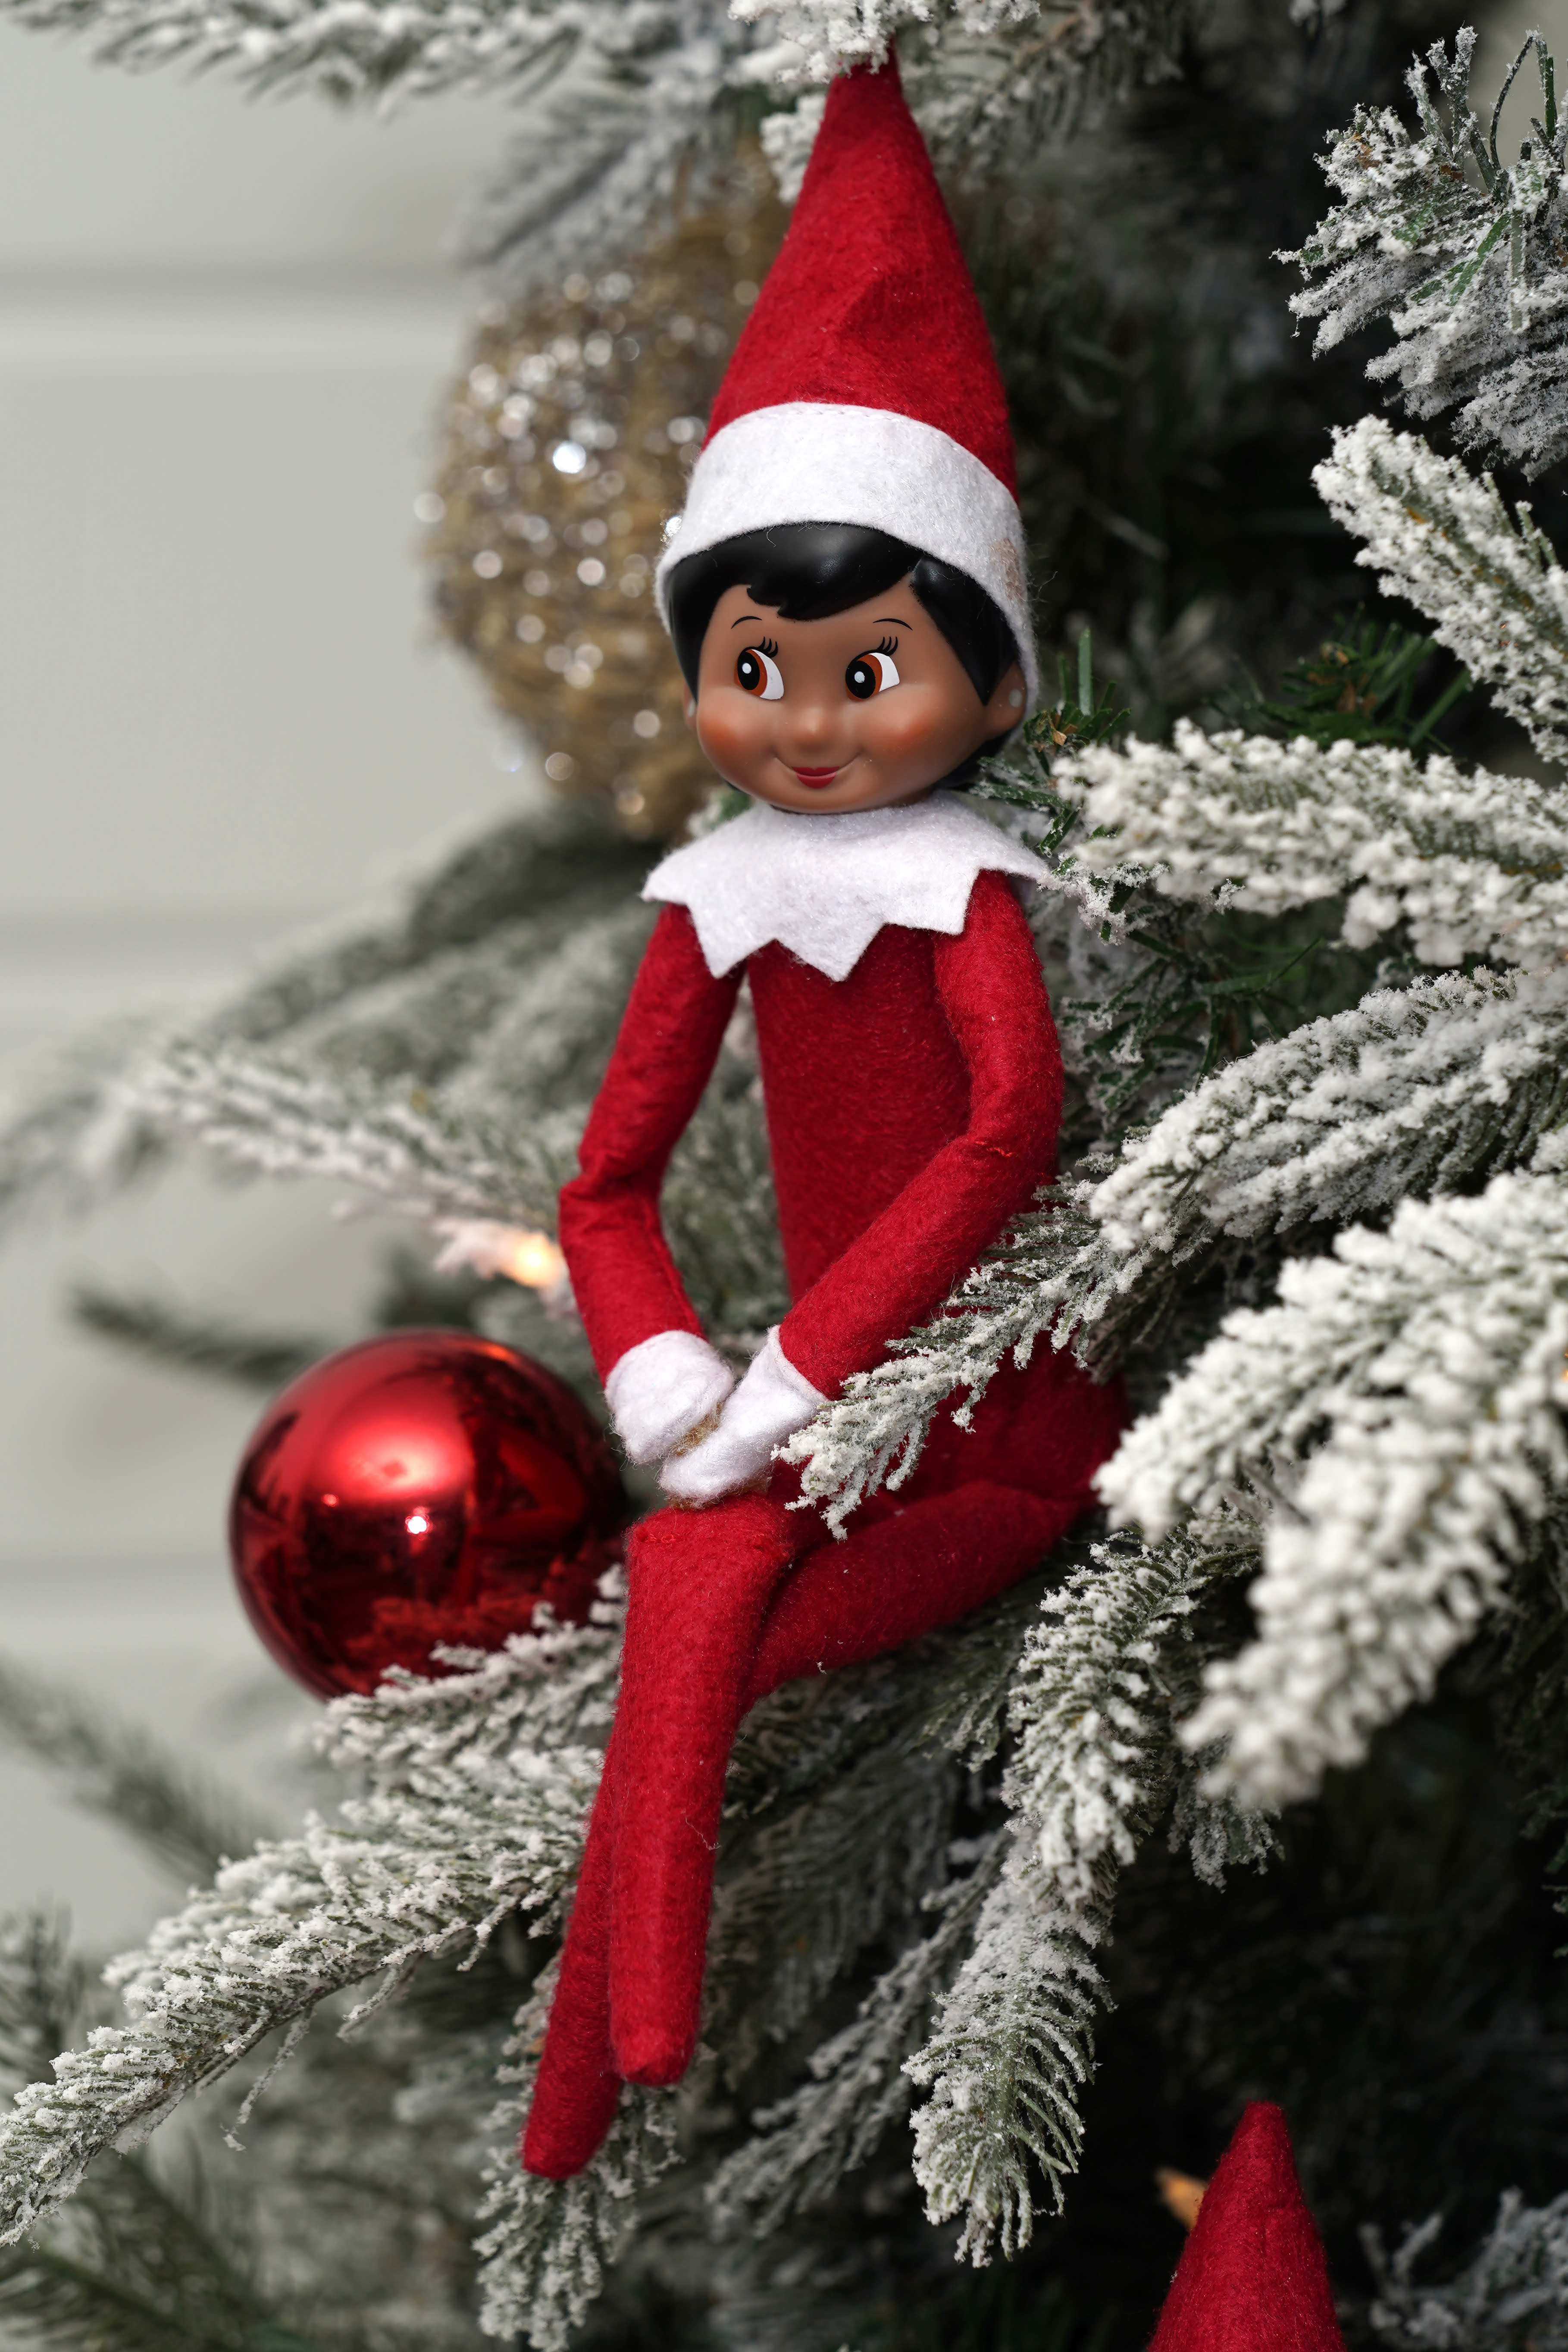 Elf on the Shelf figures are displayed at the company's studio Thursday, Aug. 27, 2020, in Atlanta. Thousands of suppliers routinely rely on credit insurance to cover potential losses if any of the retailers they work with can't pay for the goods they've ordered. But now insurers are scaling back on coverage because they are unwilling to take a chance on retailers that are struggling to survive during the pandemic. Christa Pitts, founder and co-CEO of The Lumistella Company, which produces toys, books and other products under the Elf on the Shelf and Elf Pets brands, says her retail orders were covered 100% before the pandemic. Now, only 50% are covered, forcing her to rethink who she will sell to. (AP Photo/John Bazemore)